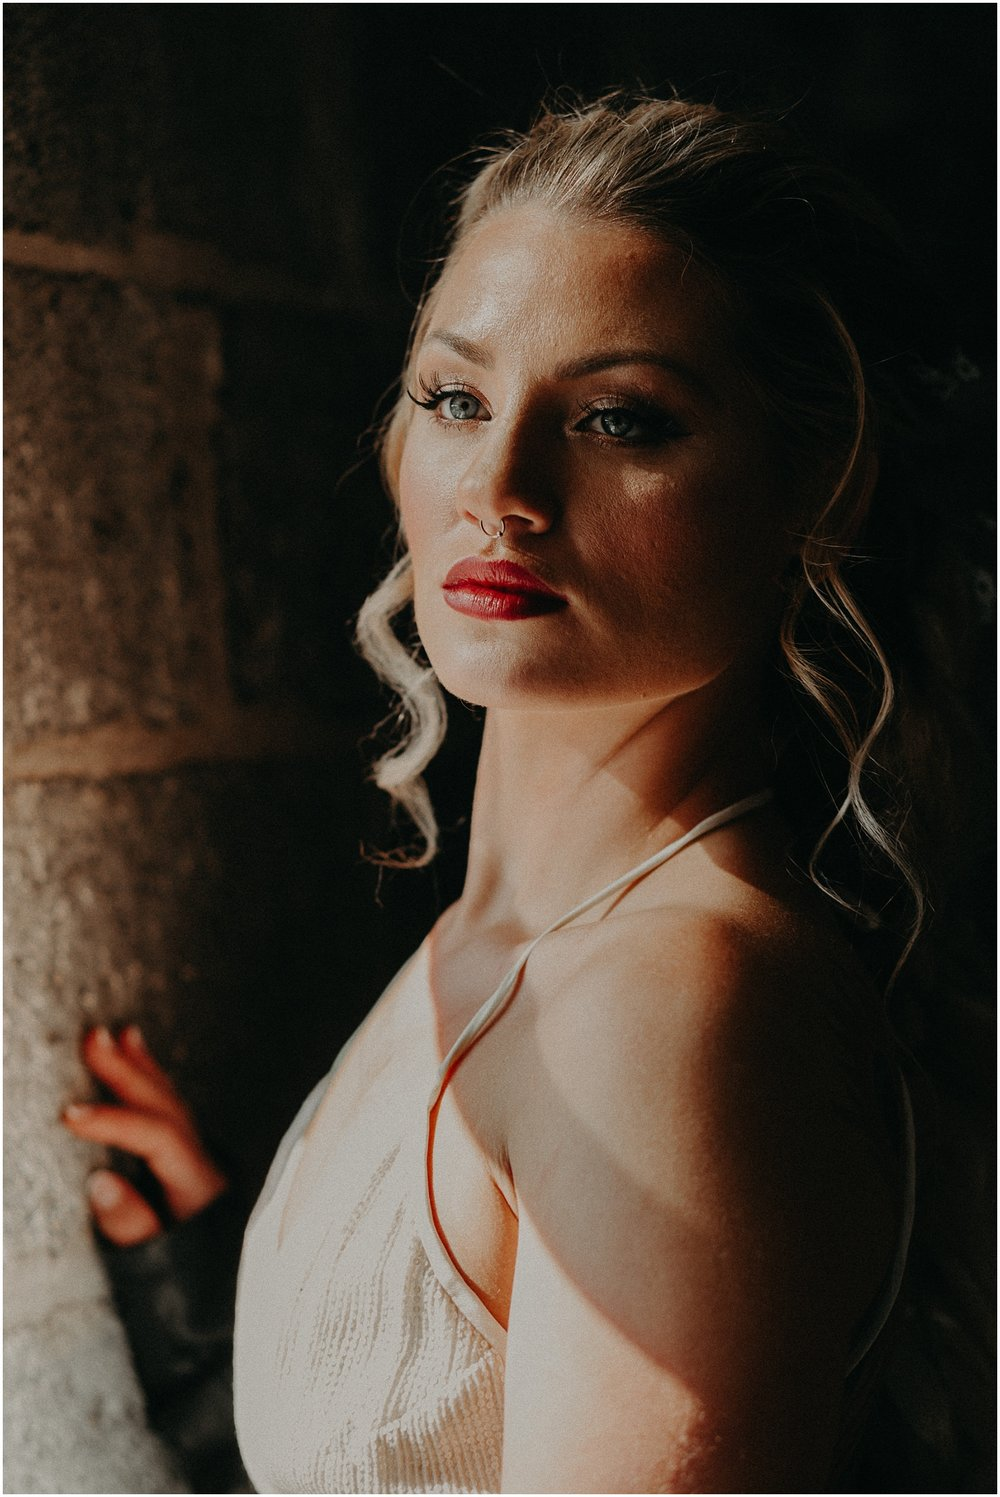 styled shoot-bridal portraits-portraits-bride-rock and roll-industrial-urban-wedding-inspiration-nj-new jersey-nyc-new york city-art-diy wedding_0083.jpg